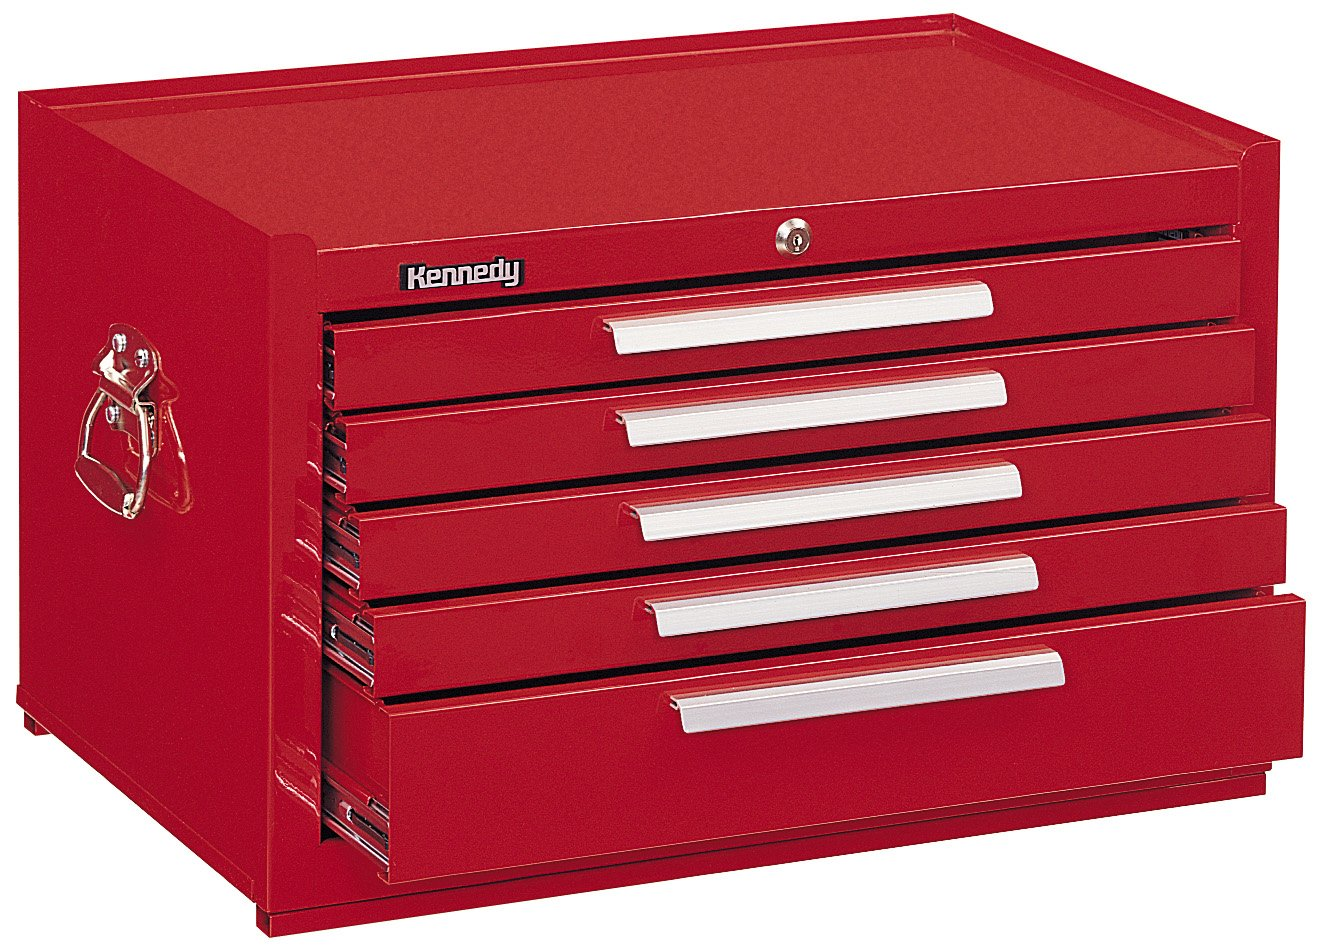 Kennedy Manufacturing 285R 5-Drawer Mechanic's Chest with Friction Slides, 27'', Red